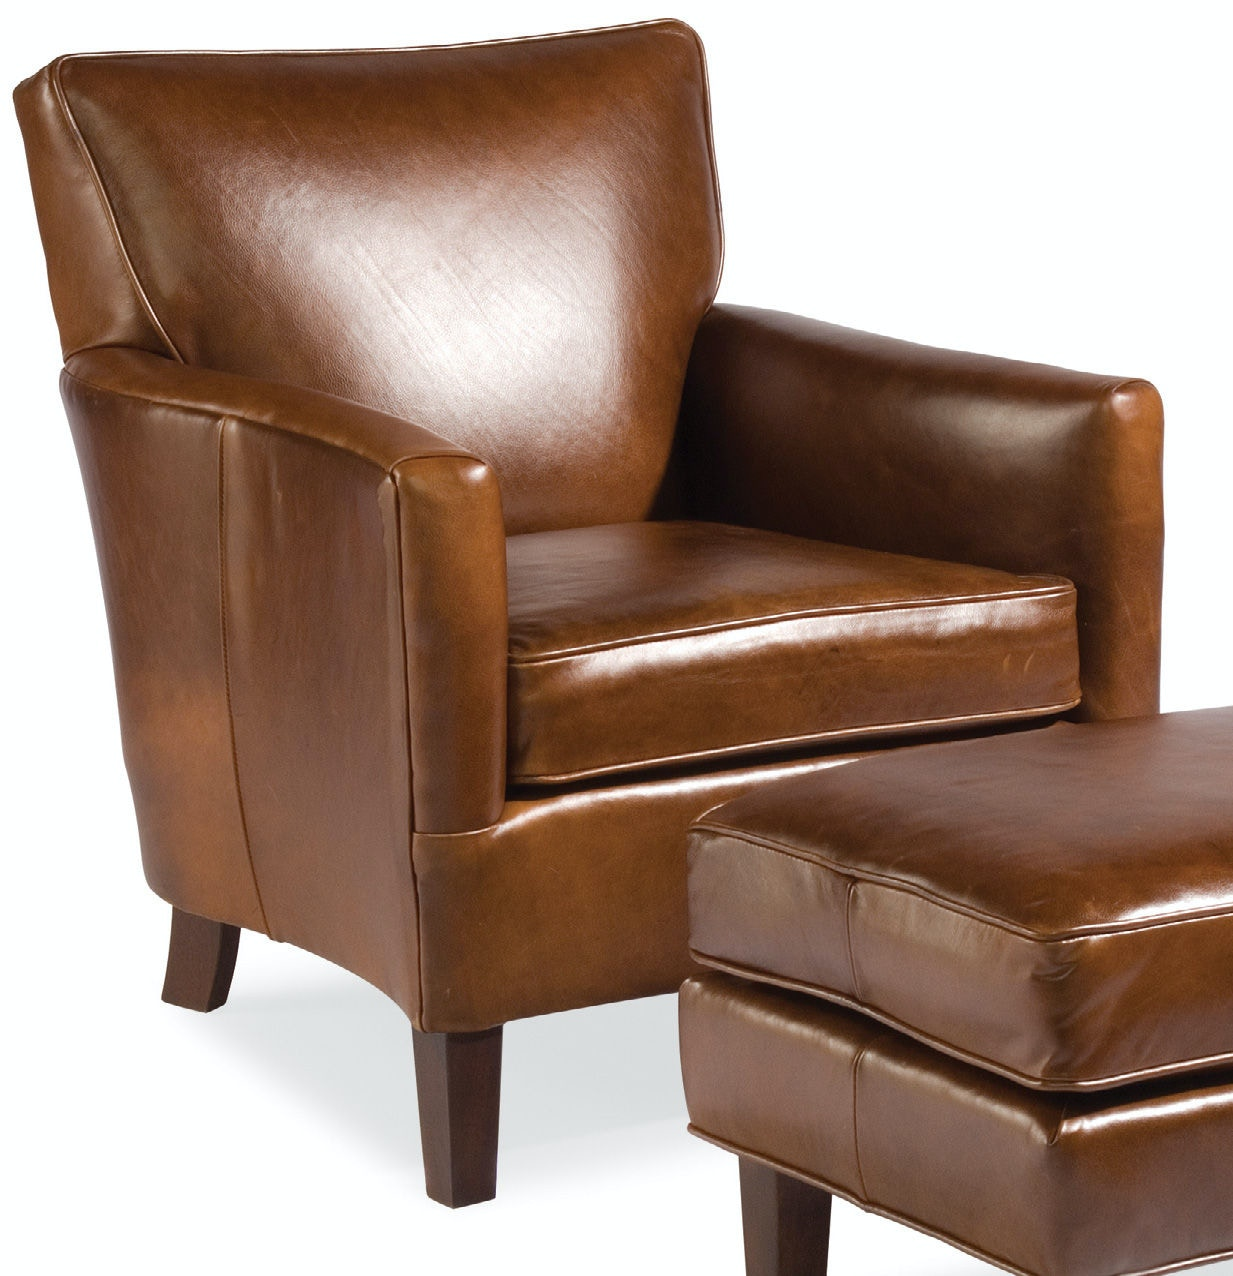 Furniture Stores Eugene ... Moore Living Room Nigel Club Chair 1349 at M Jacobs Family of Stores